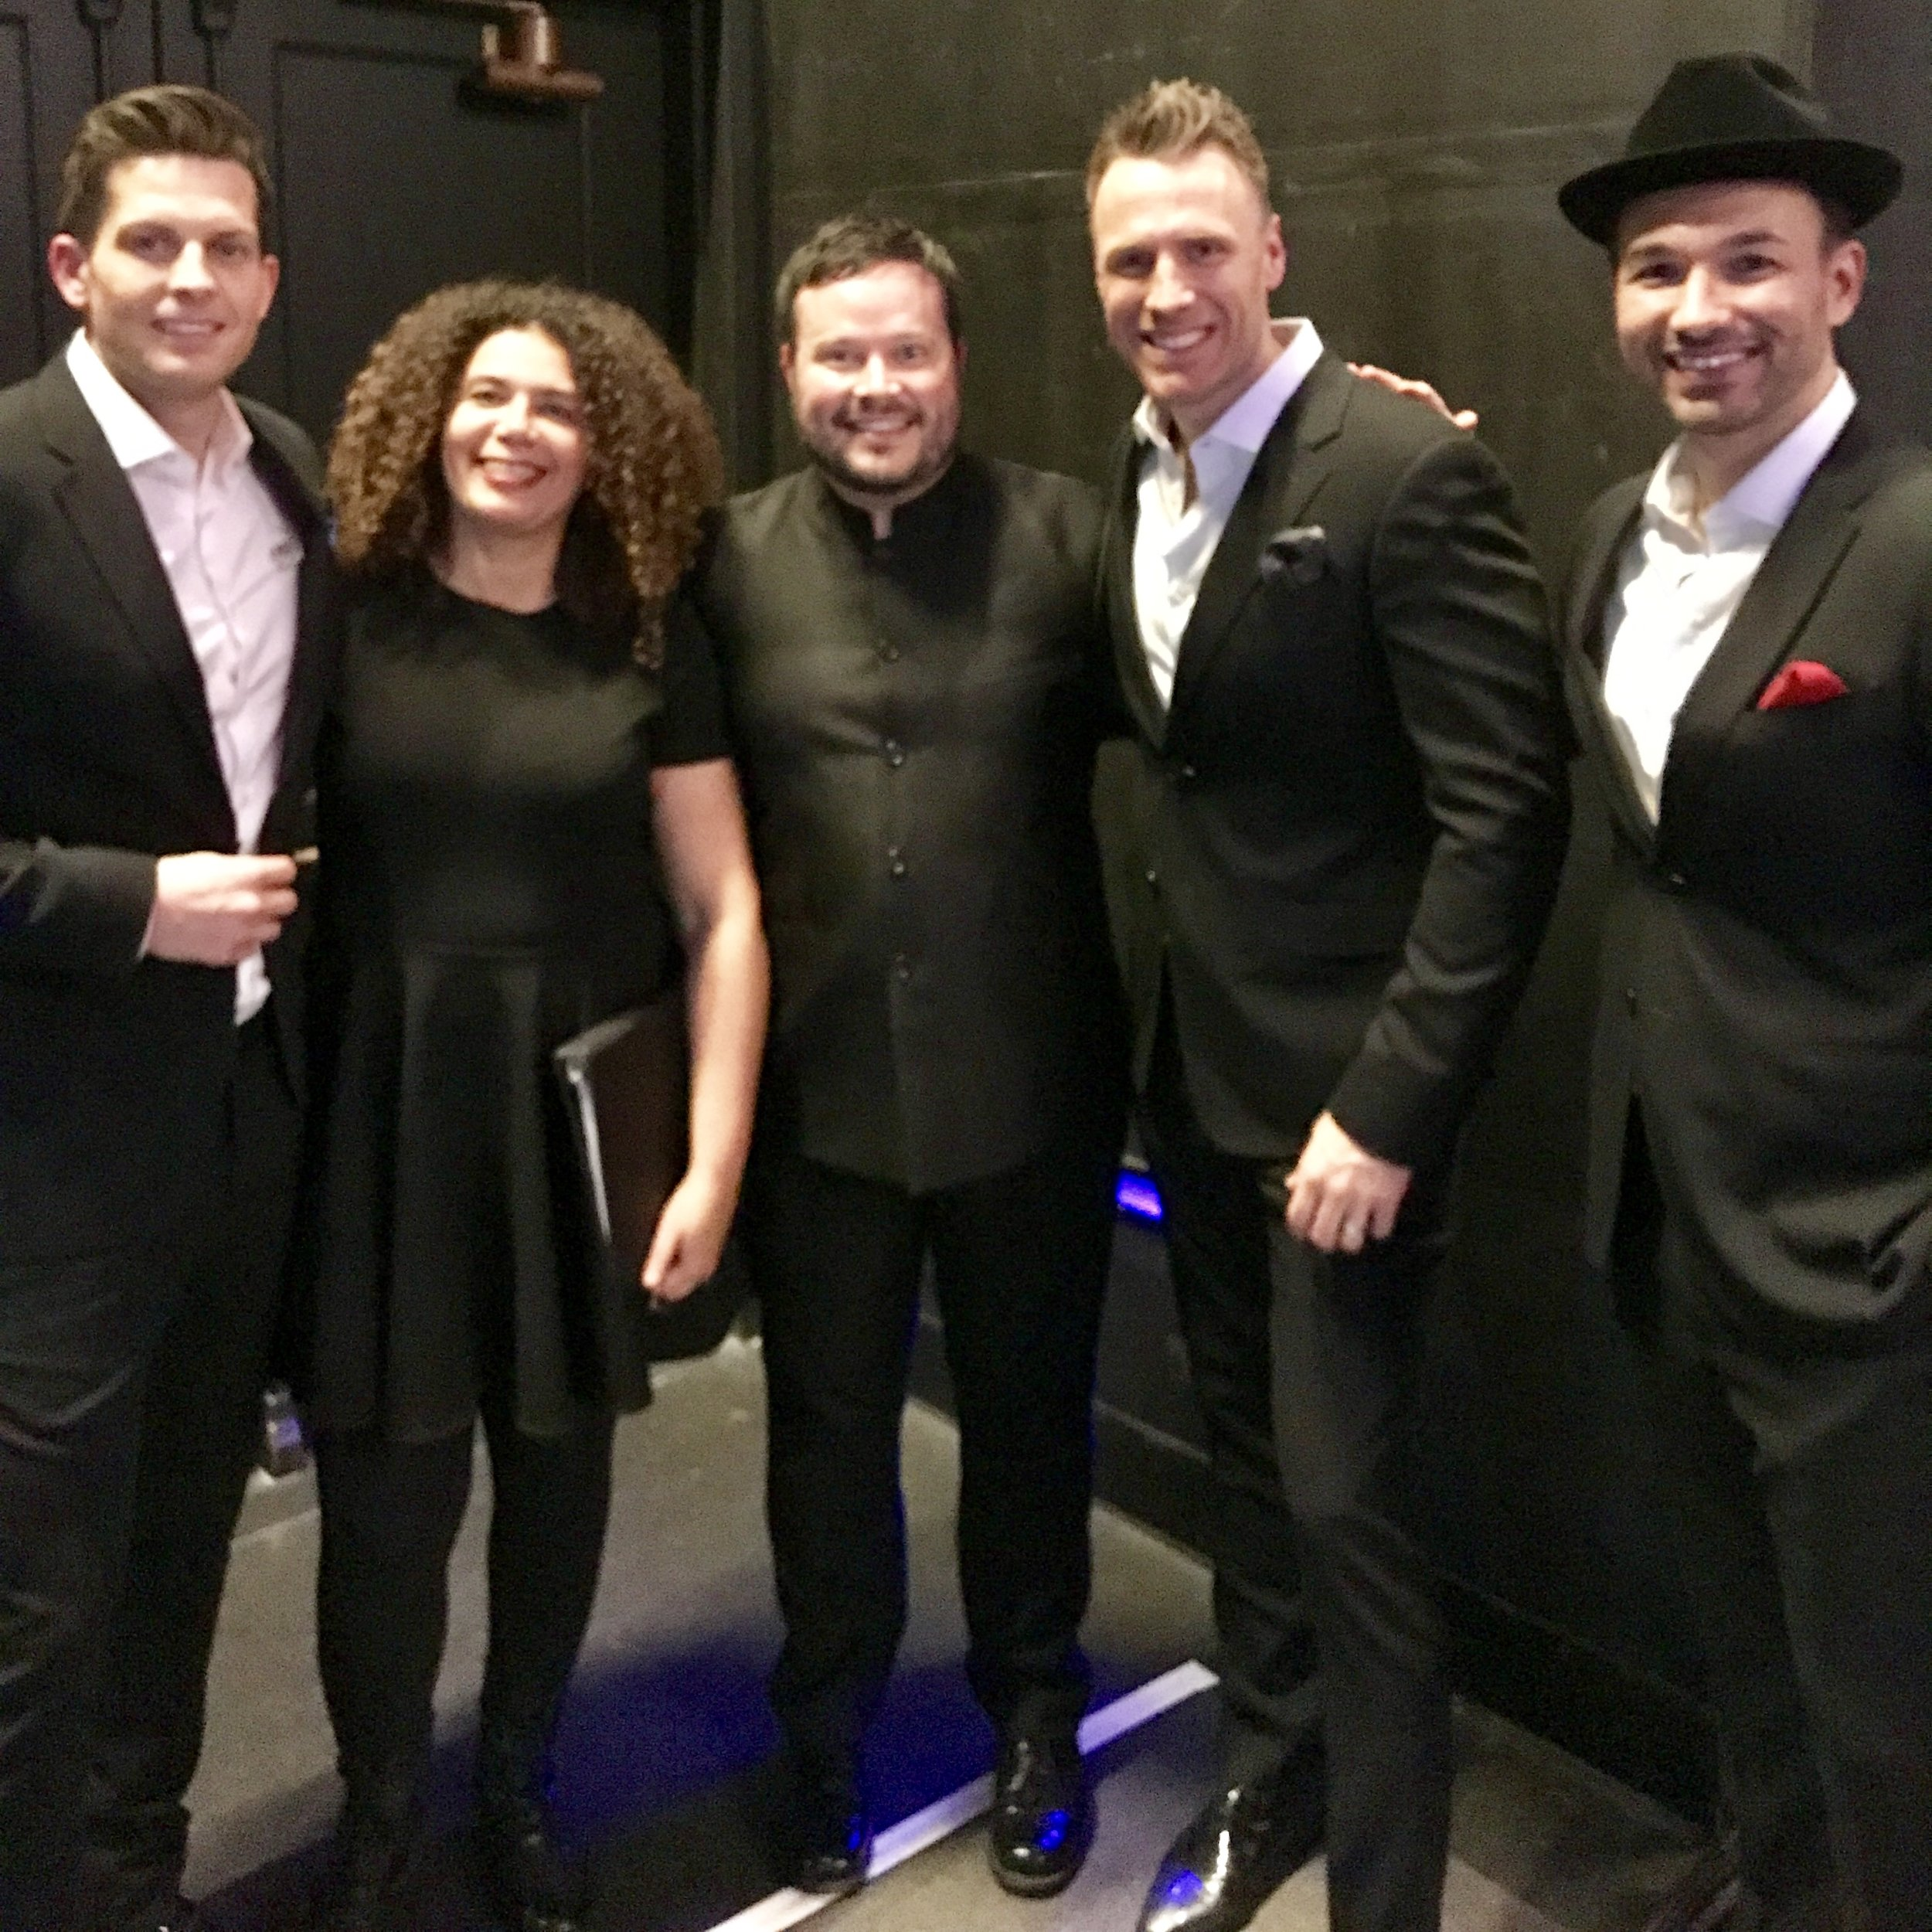 Me and Valerie with The Tenors